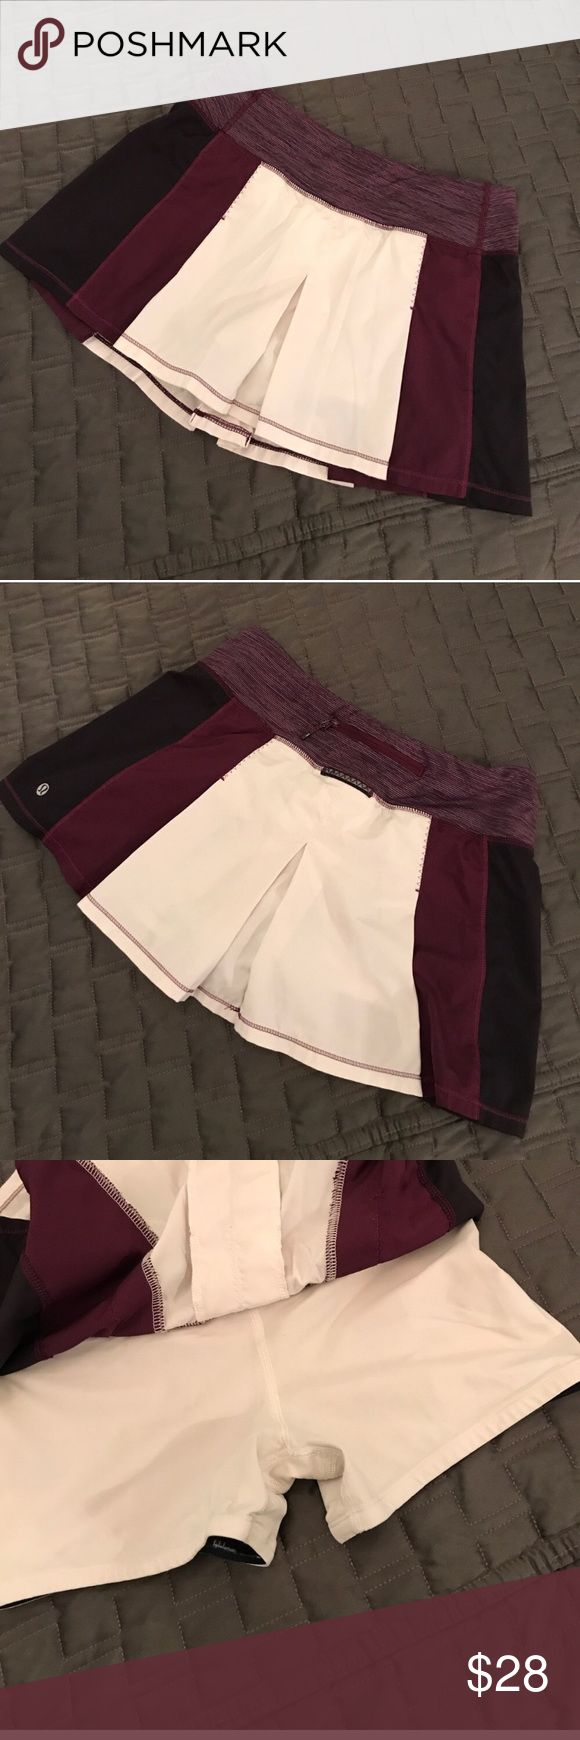 Lululemon burgundy tennis skirt Cream burgundy and black skirt with white under shorts. Back zipper pocket. Unsure of size cannot locate size dot. This is a reposh due to being too small. Original seller said size 6 but I feel this is more of a 2/4. Excellent condition, no flaws!! lululemon athletica Skirts